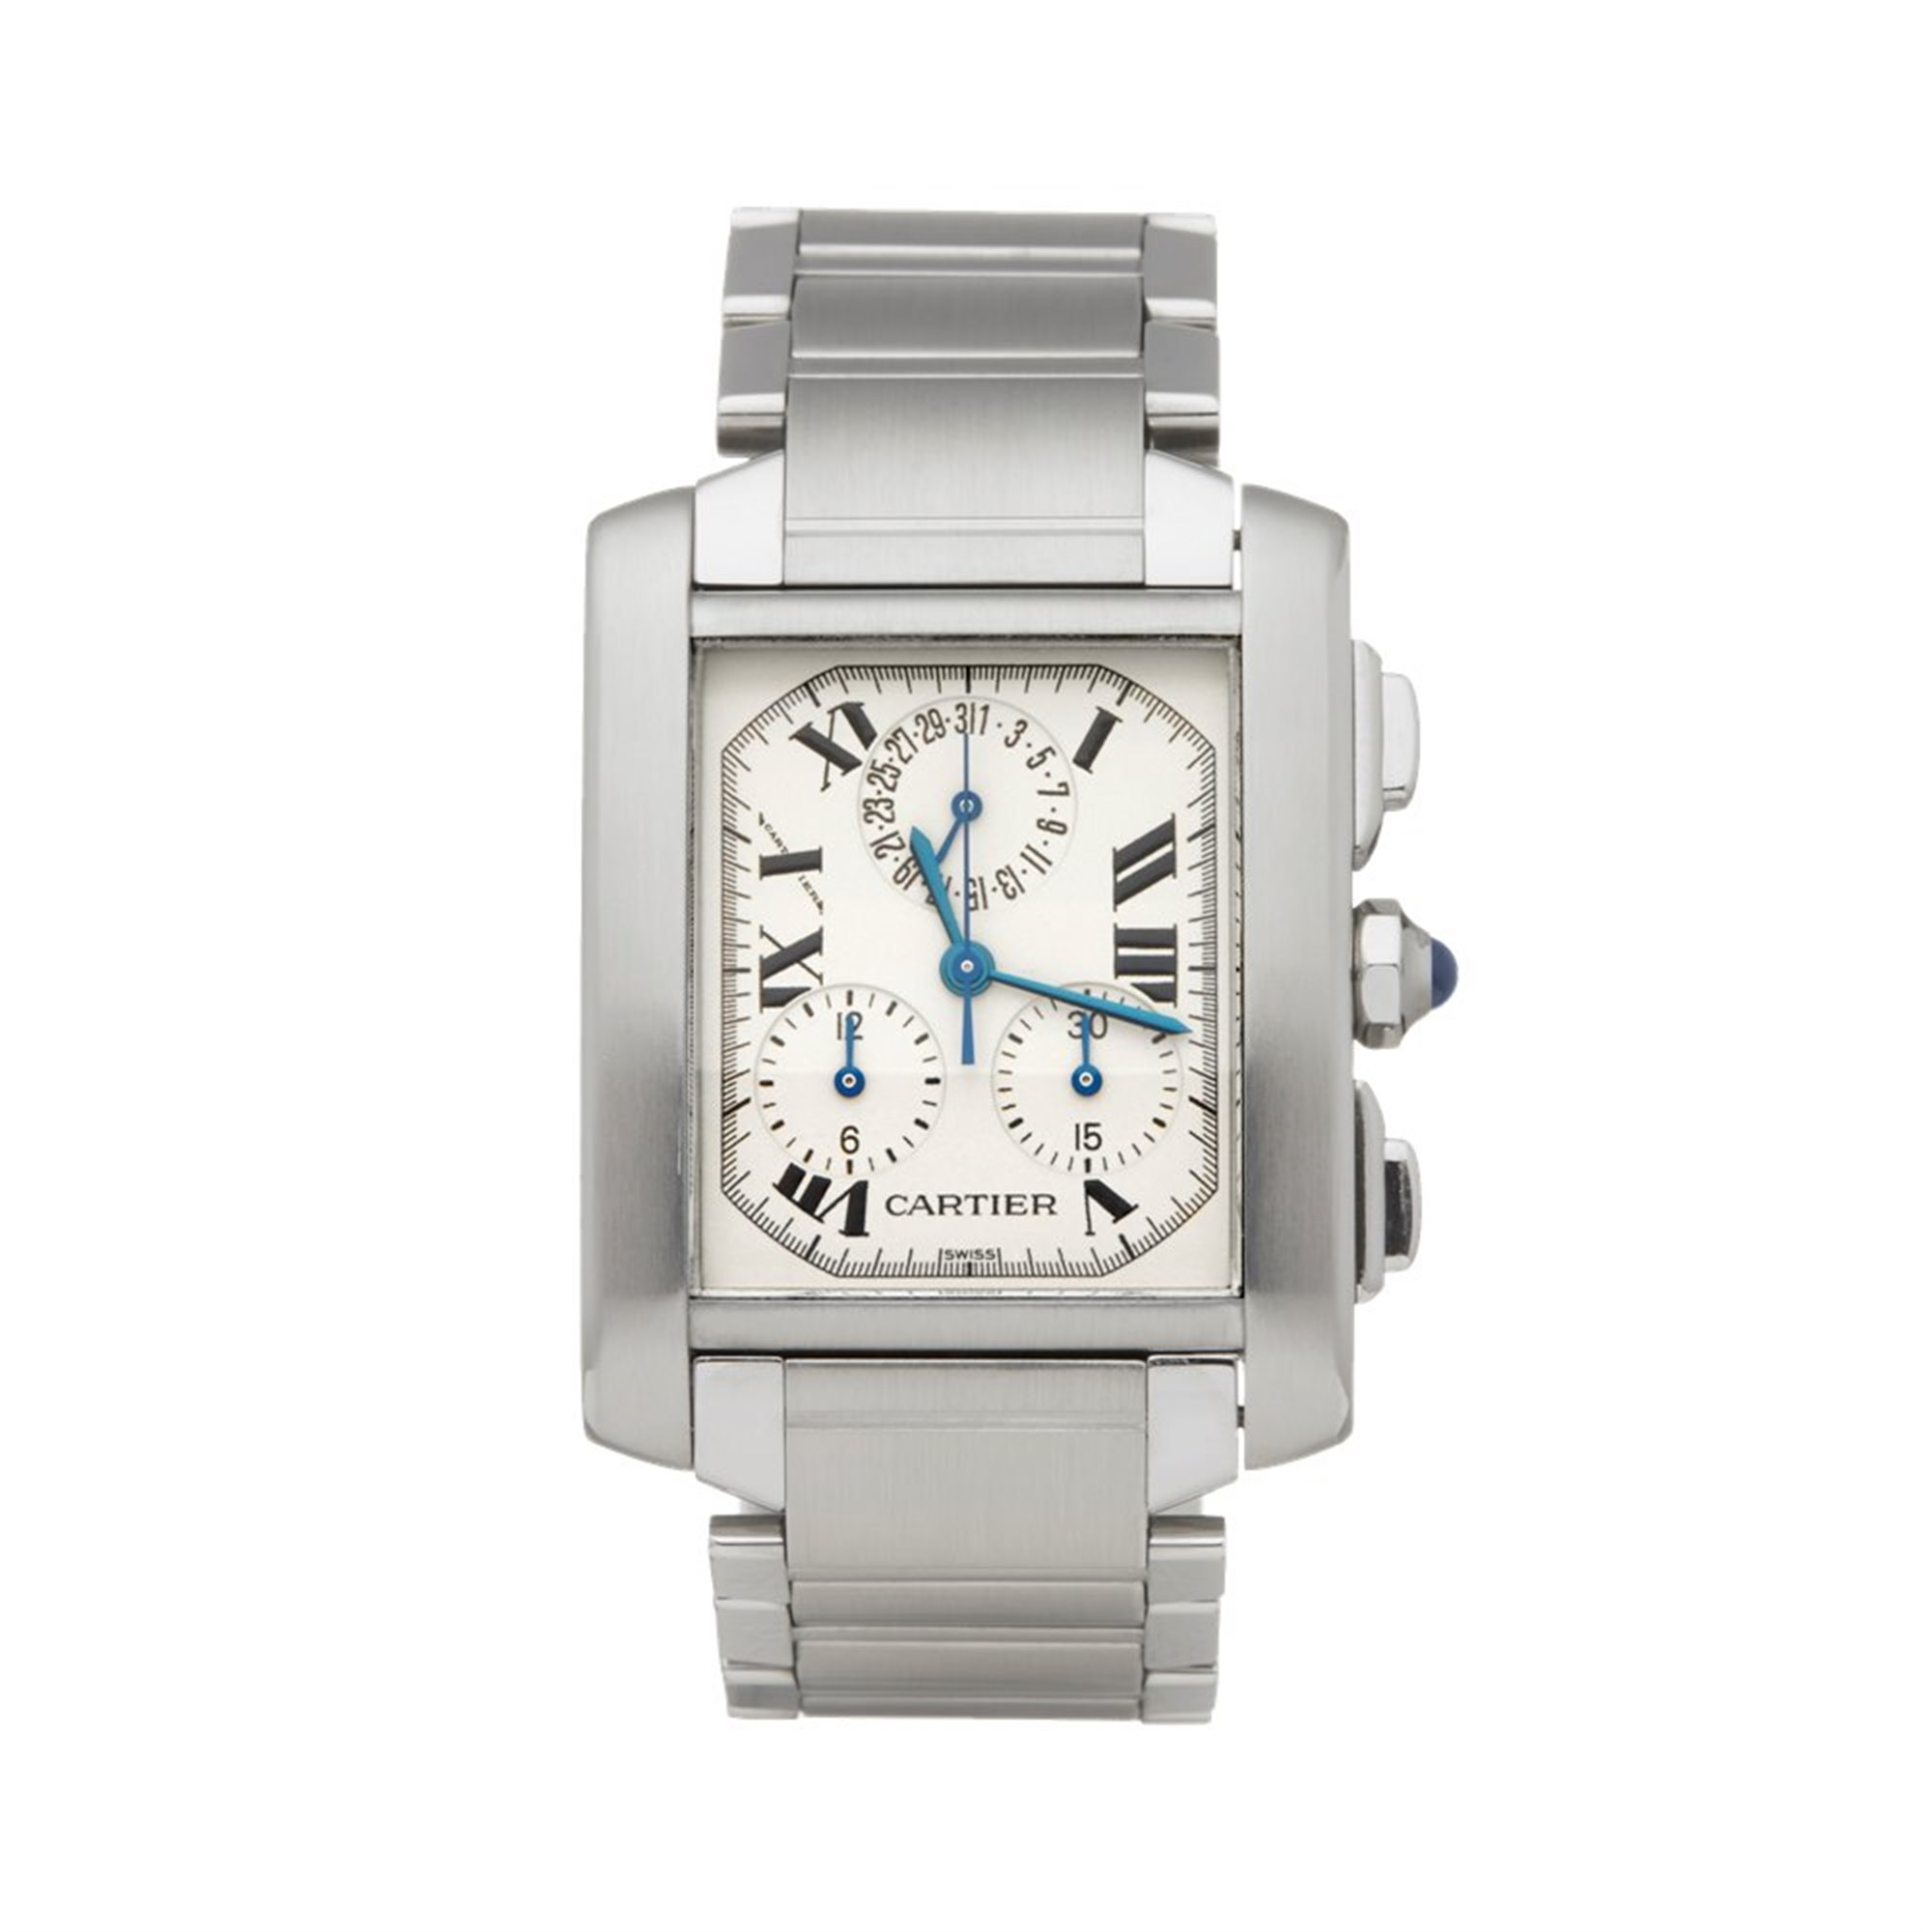 Cartier Tank Francaise Chronoreflex Stainless Steel W51001Q3 OR 2303